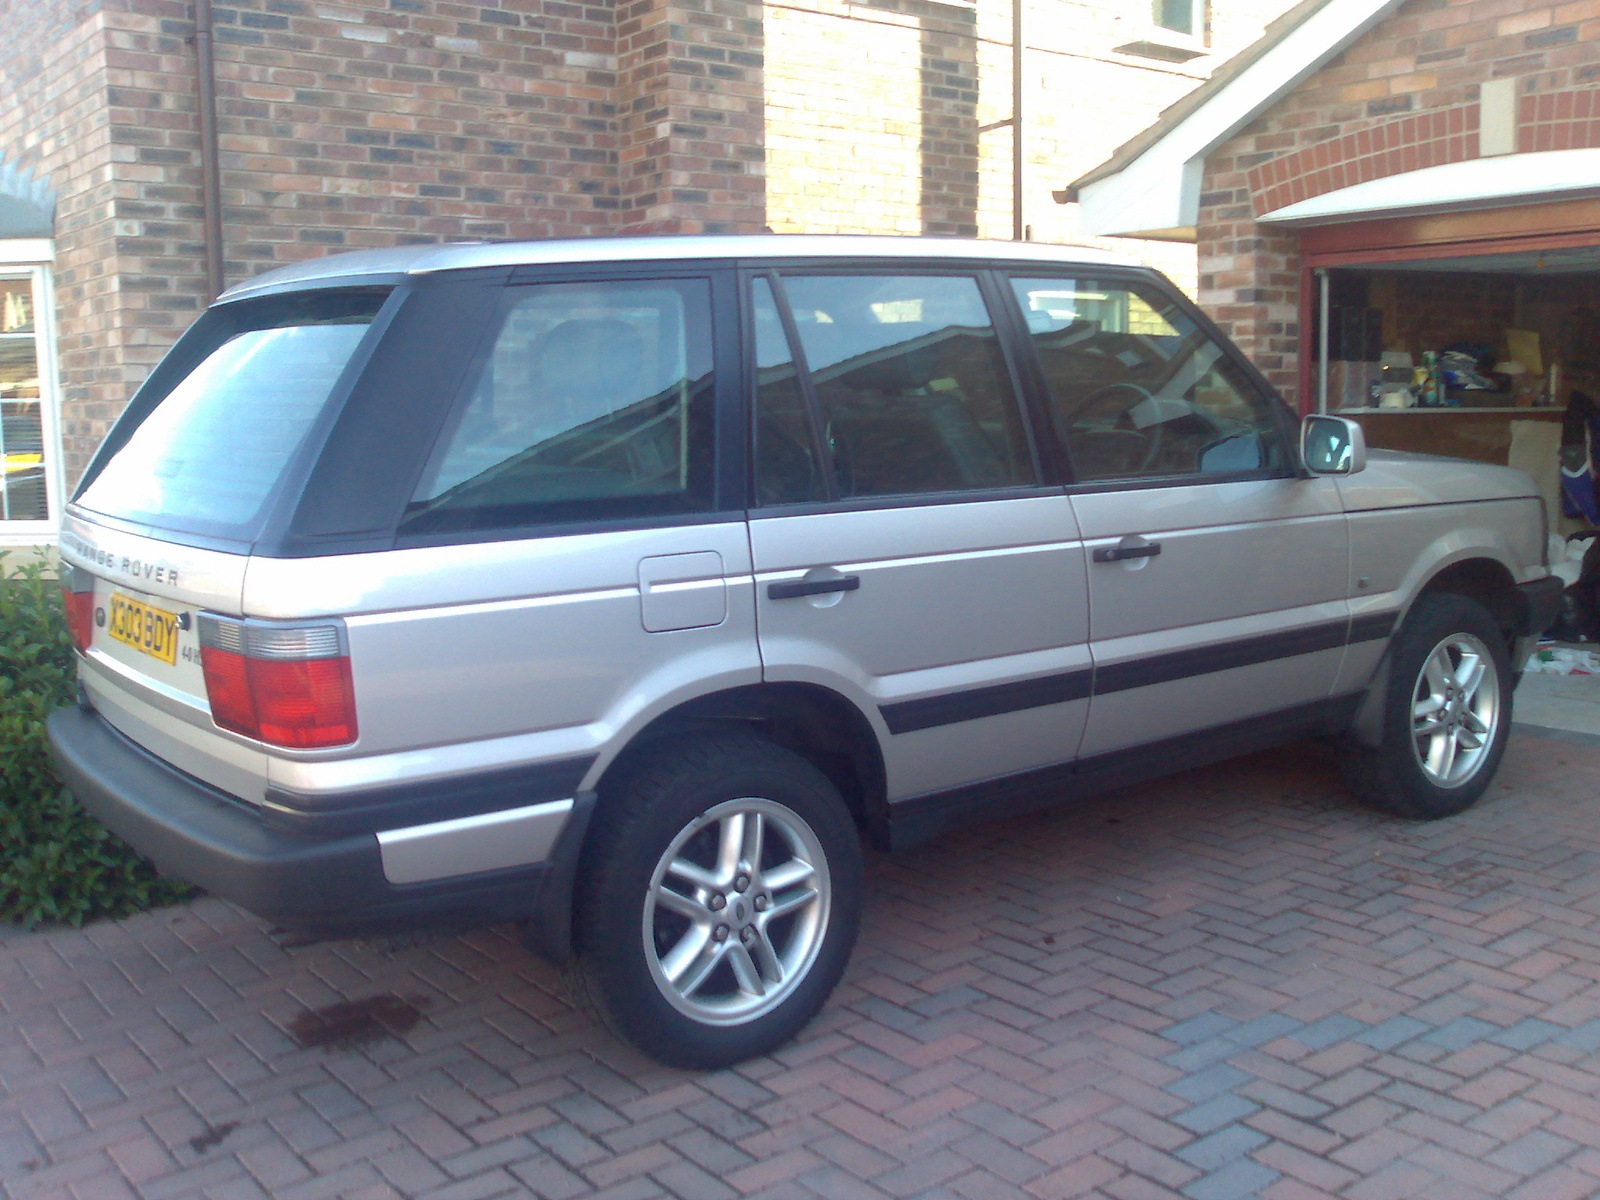 2002 Land Rover Range Rover Pictures Cargurus